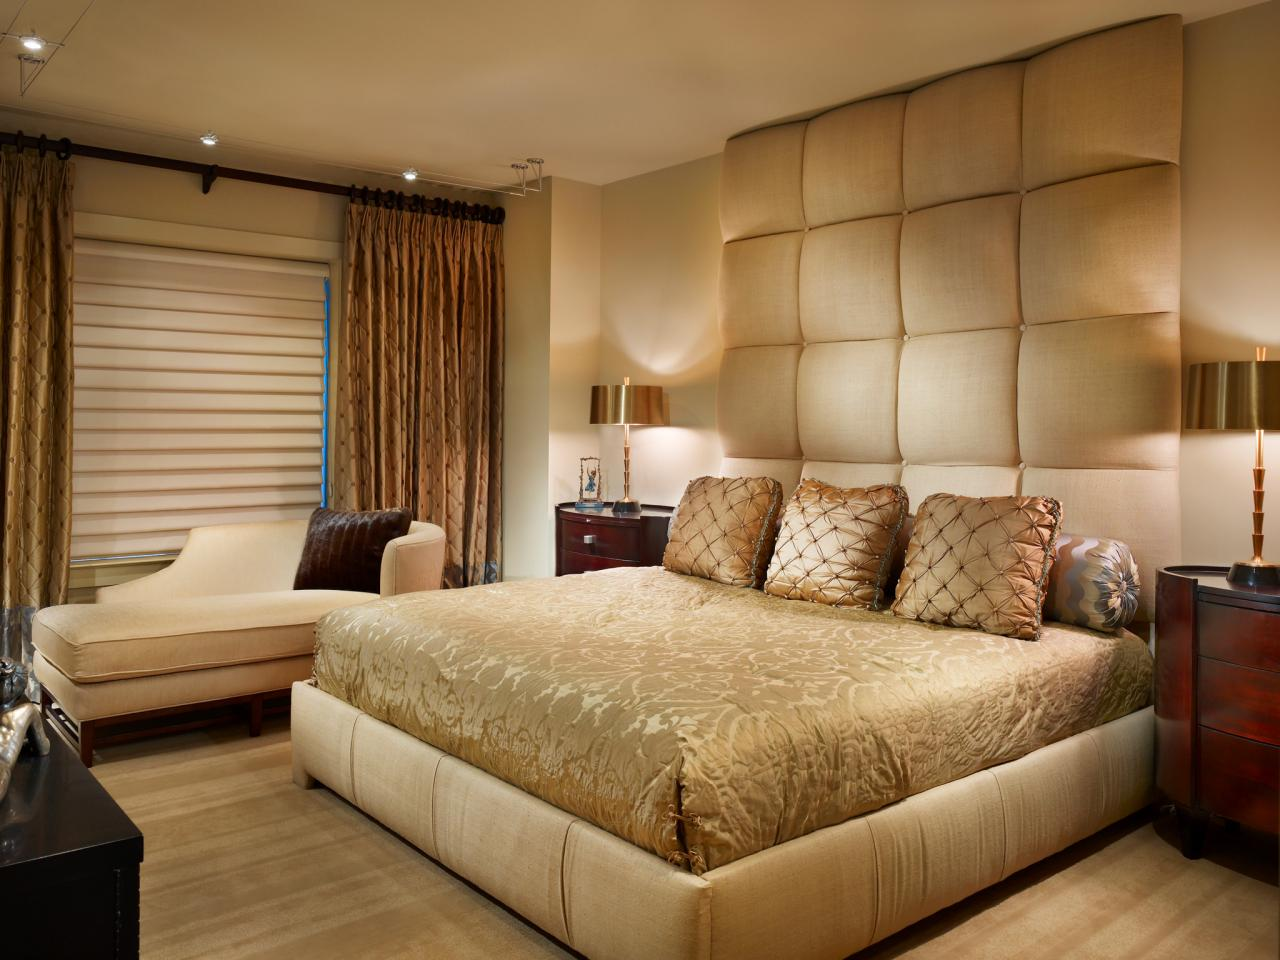 Bedroom Paint Ideas In Pakistan what color to paint your bedroom?